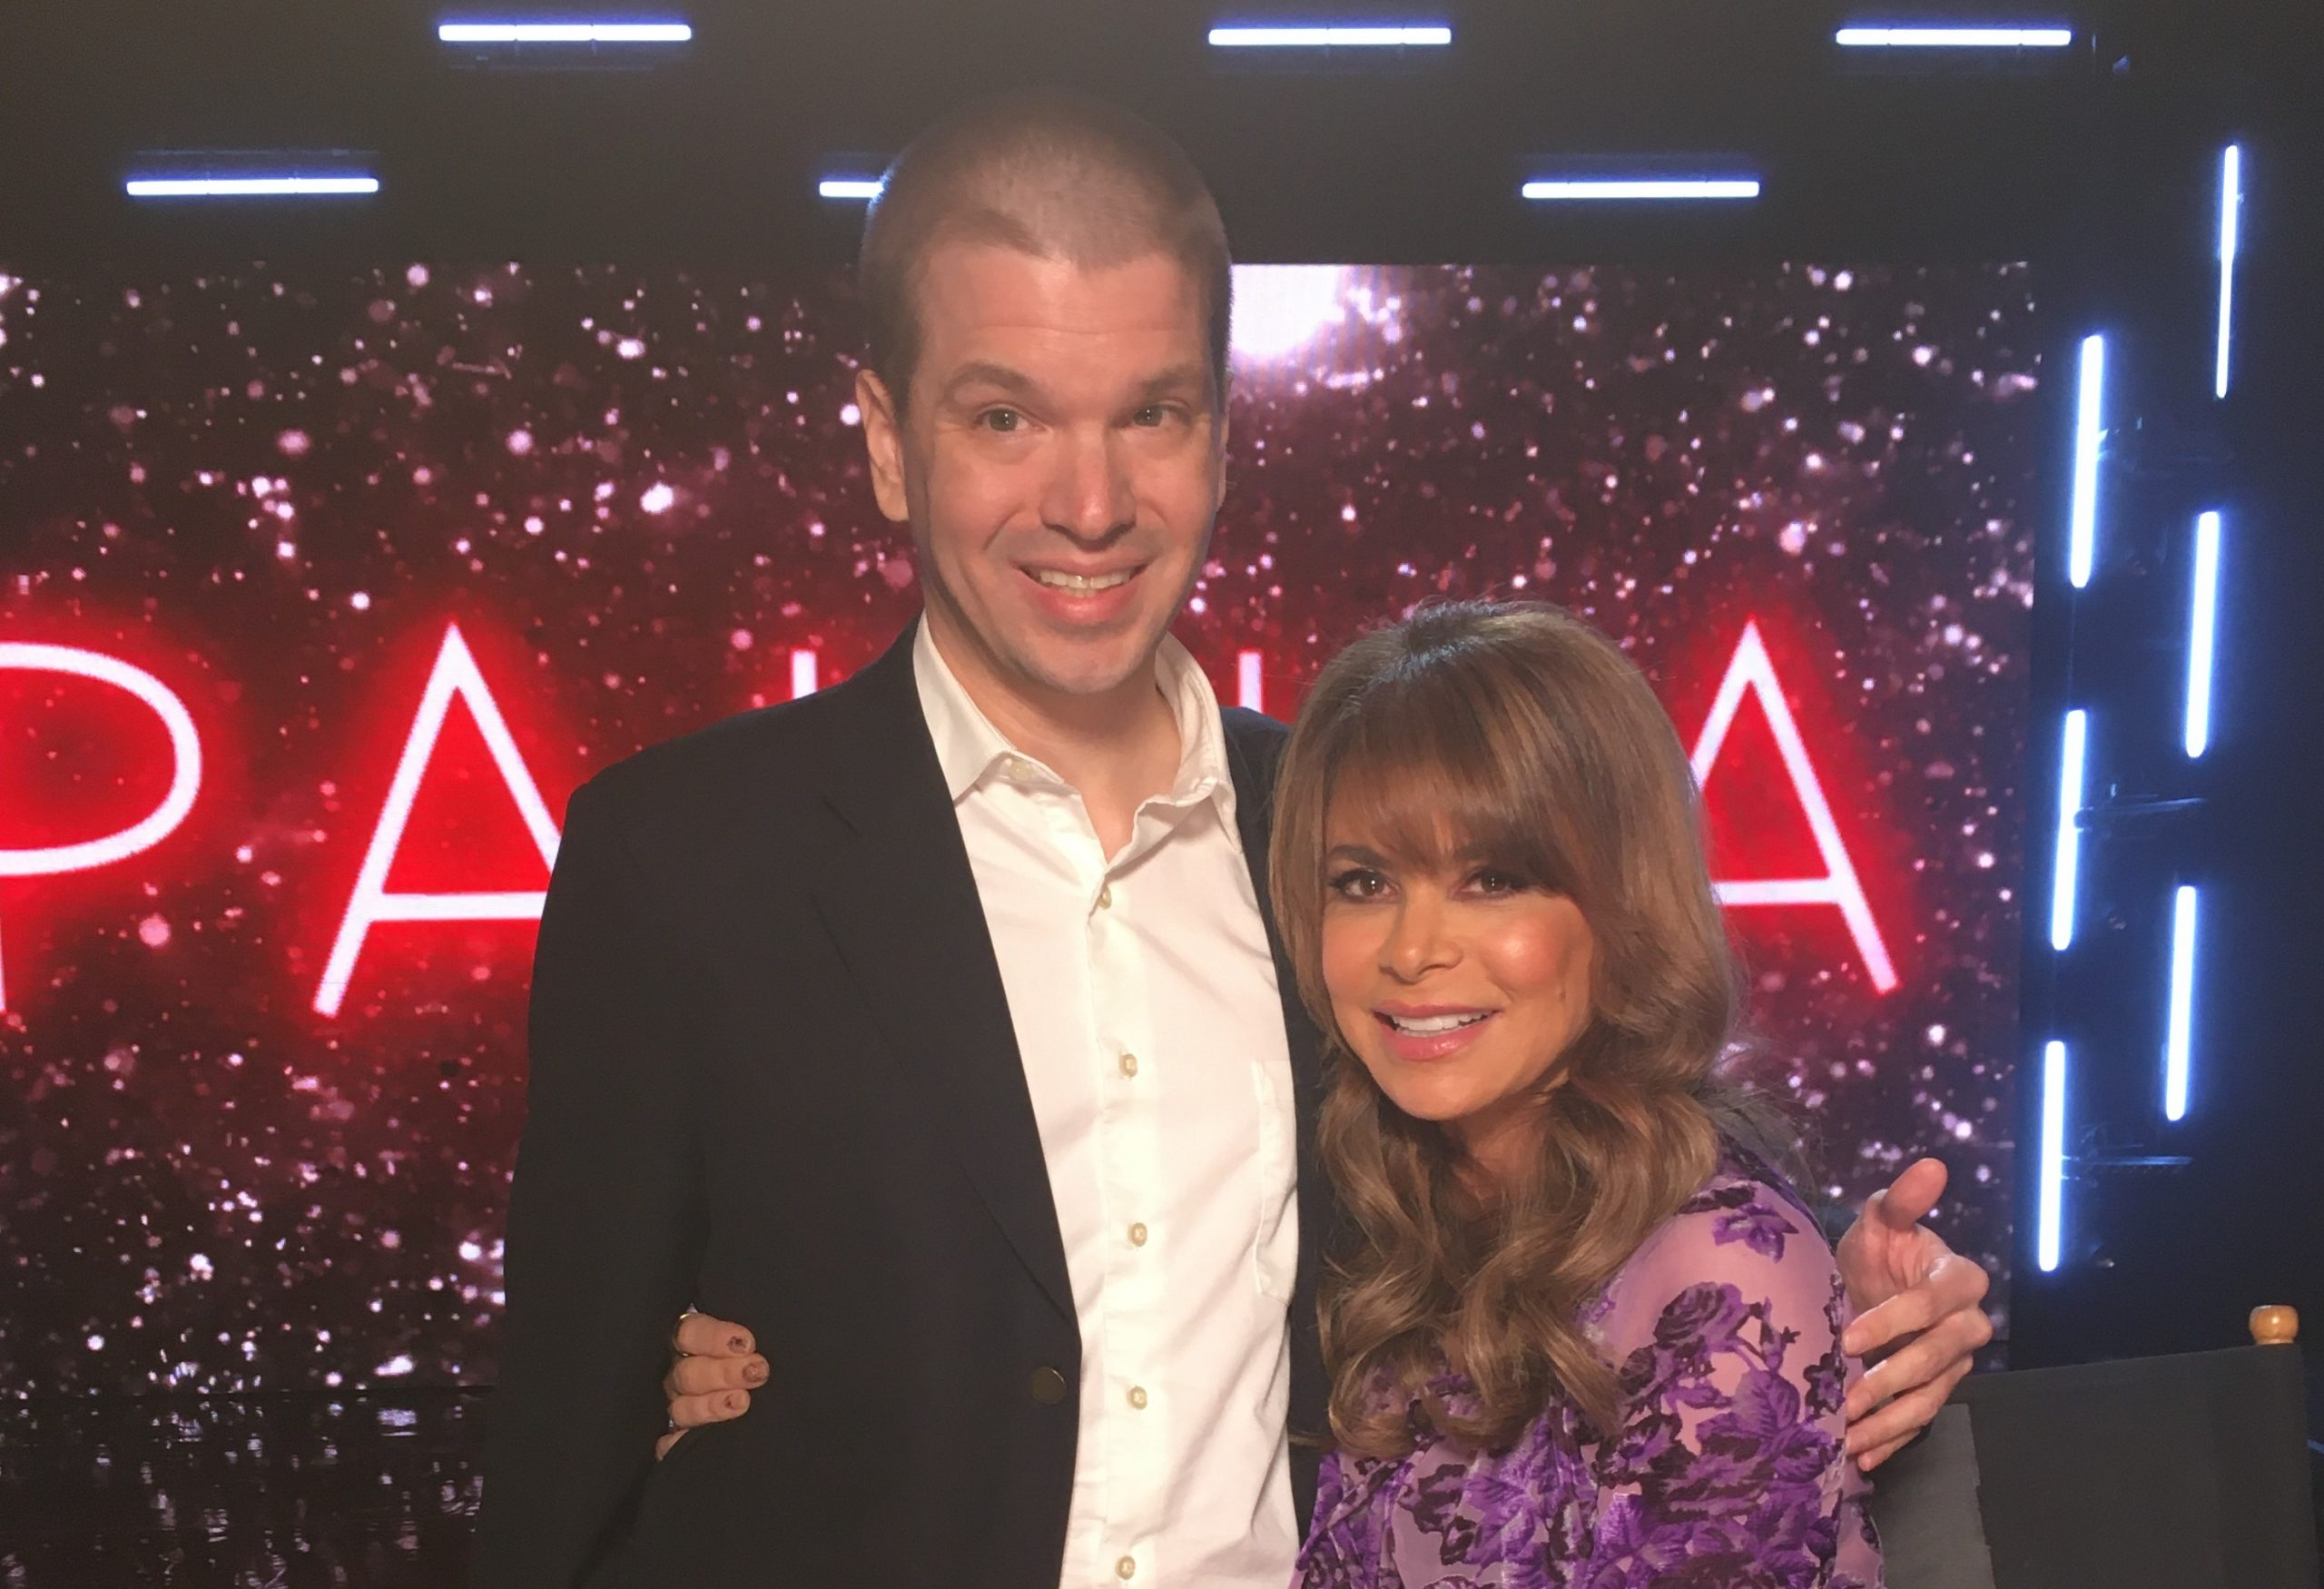 Chris Yandek, Entertainment News 2019, Las Vegas, Las Vegas 2019, Las Vegas Entertainment Scene 2019, Las Vegas News 2019, News 2019, Paul Abdul Las Vegas Show 2019, Paula Abdul 2019, Paula Abdul Las Vegas News 2019, Paula Abdul Las Vegas Residency 2019, Paula Abdul Las Vegas Show 2019, Chris Yandek, Paula Abdul 2019, Chris Yandek Paula Abdul